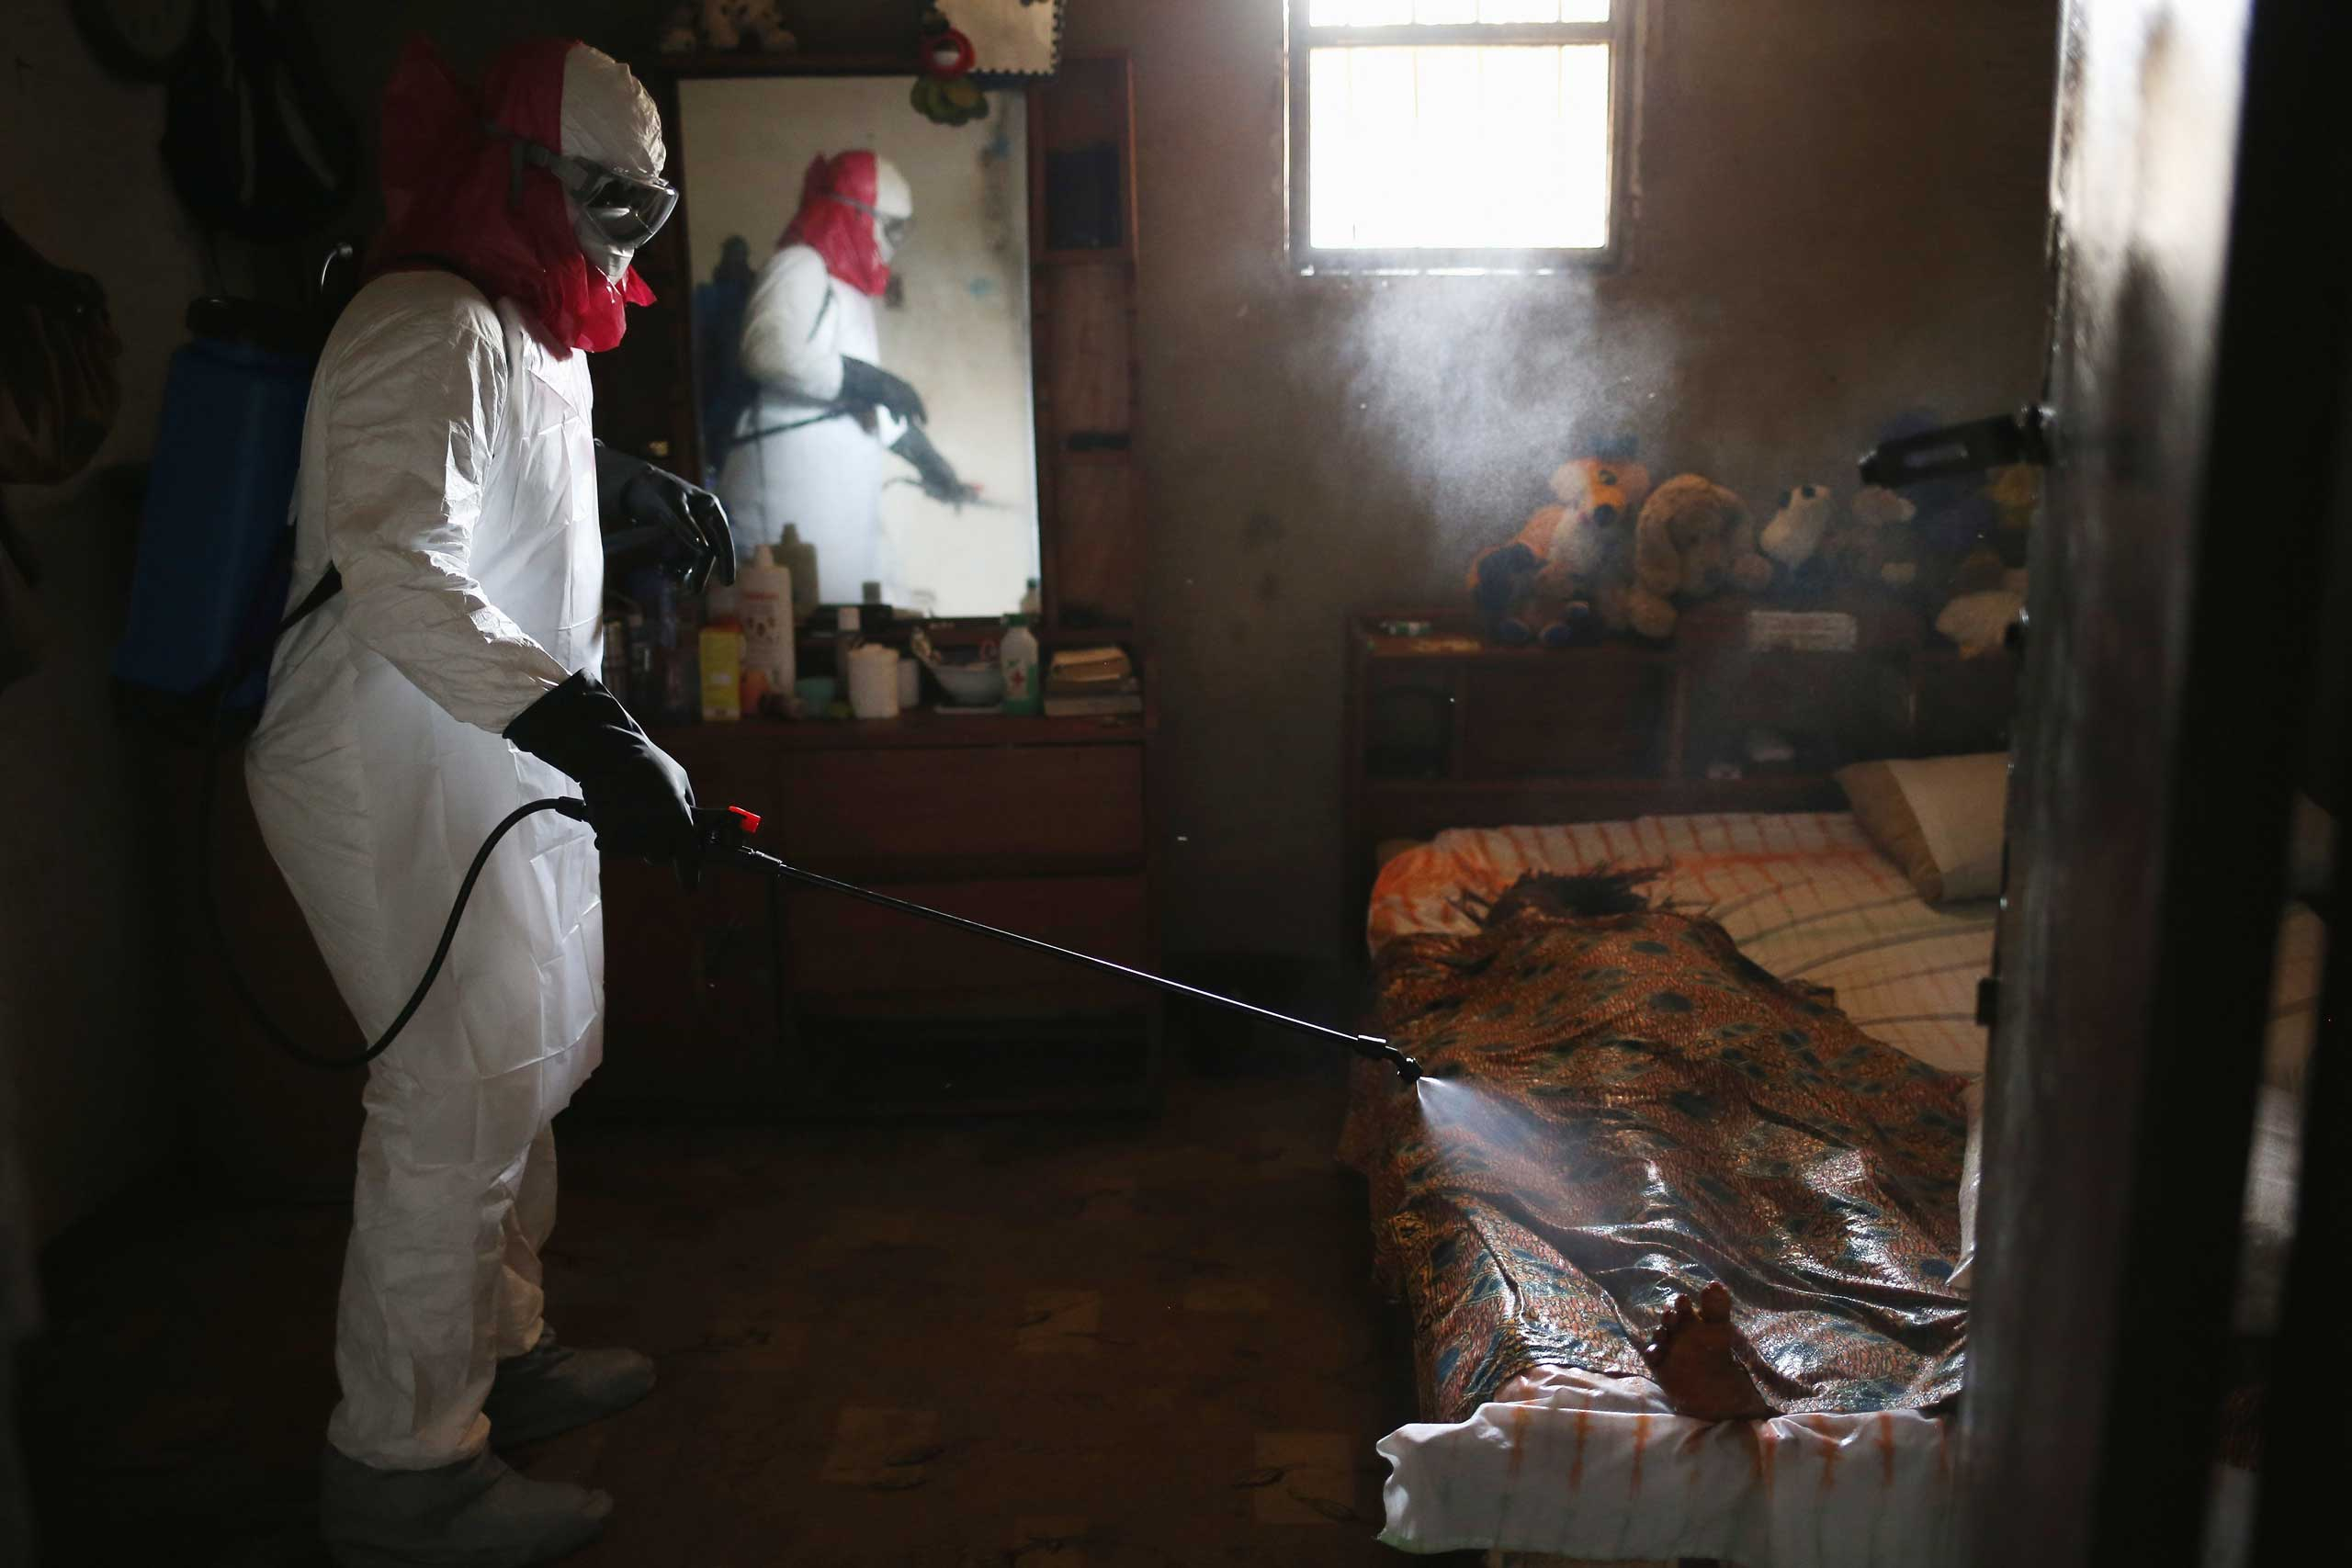 A burial team from the Liberian health department sprays disinfectant over the body of a woman suspected of dying of the Ebola virus on Aug. 14, 2014 in Monrovia.